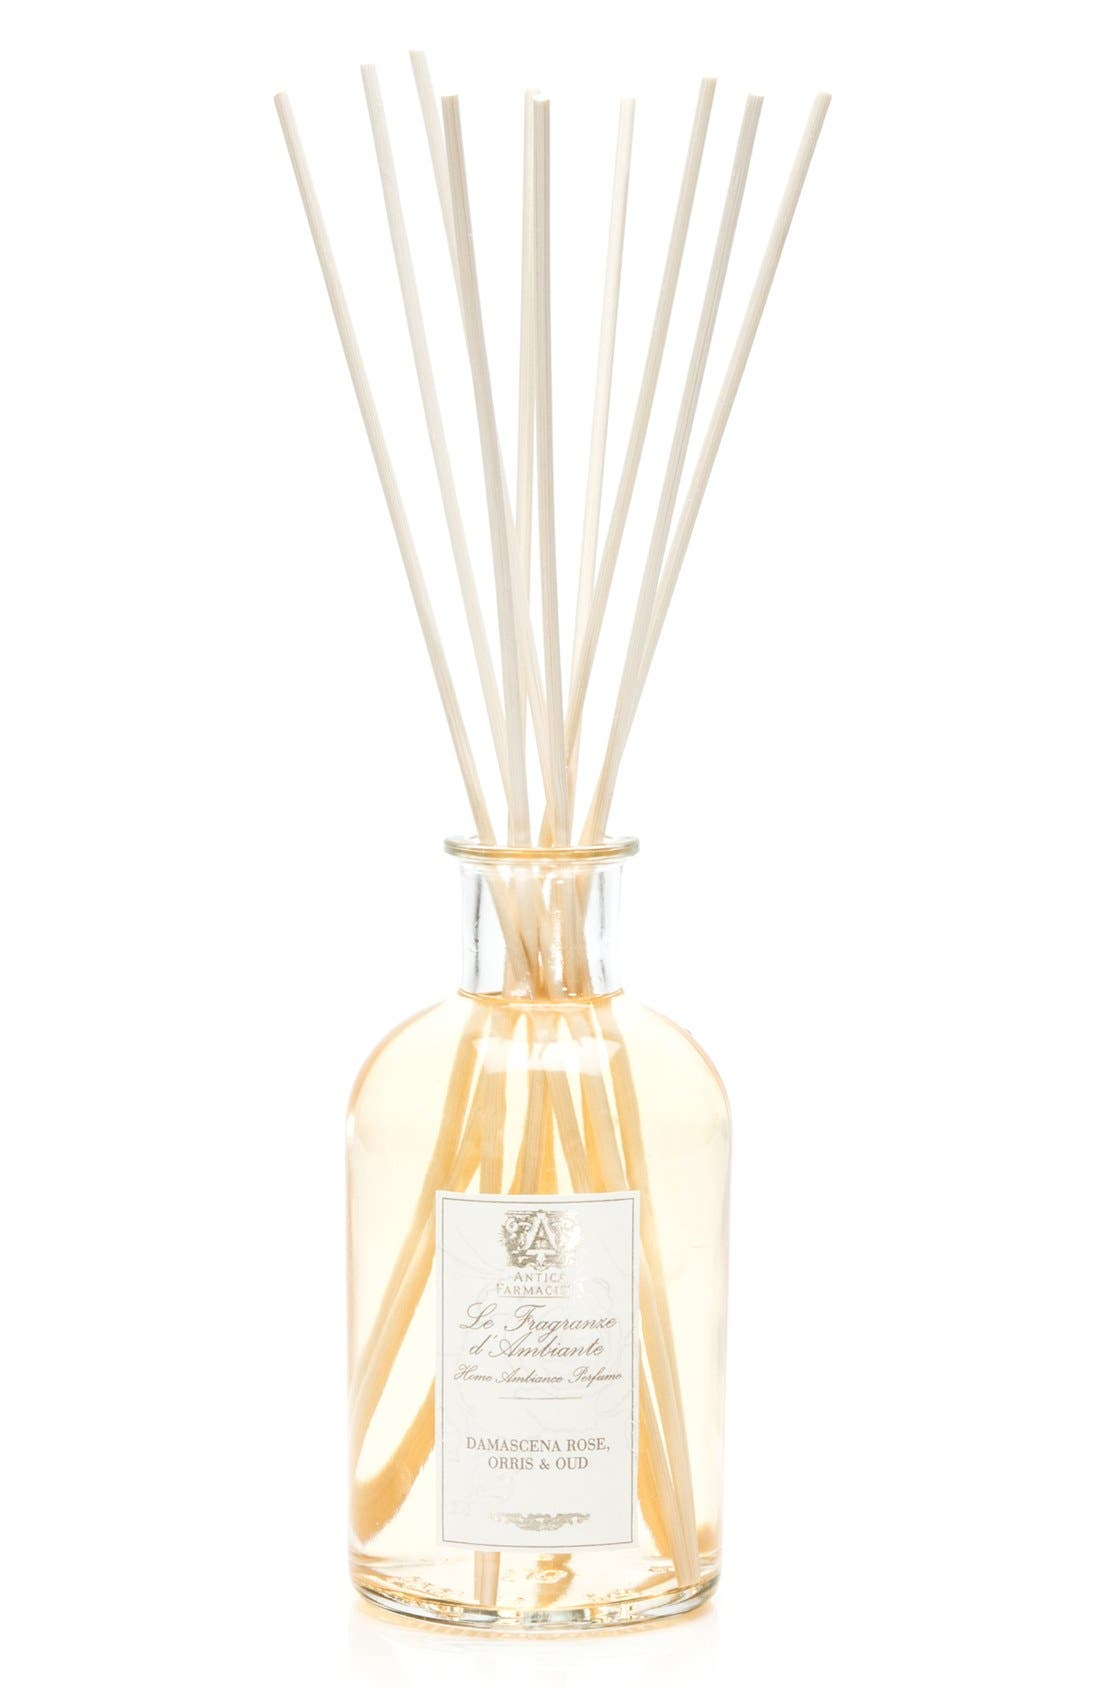 ANTICA FARMACISTA,                             Damascena Rose, Orris & Oud Home Ambiance Perfume,                             Alternate thumbnail 2, color,                             NO COLOR